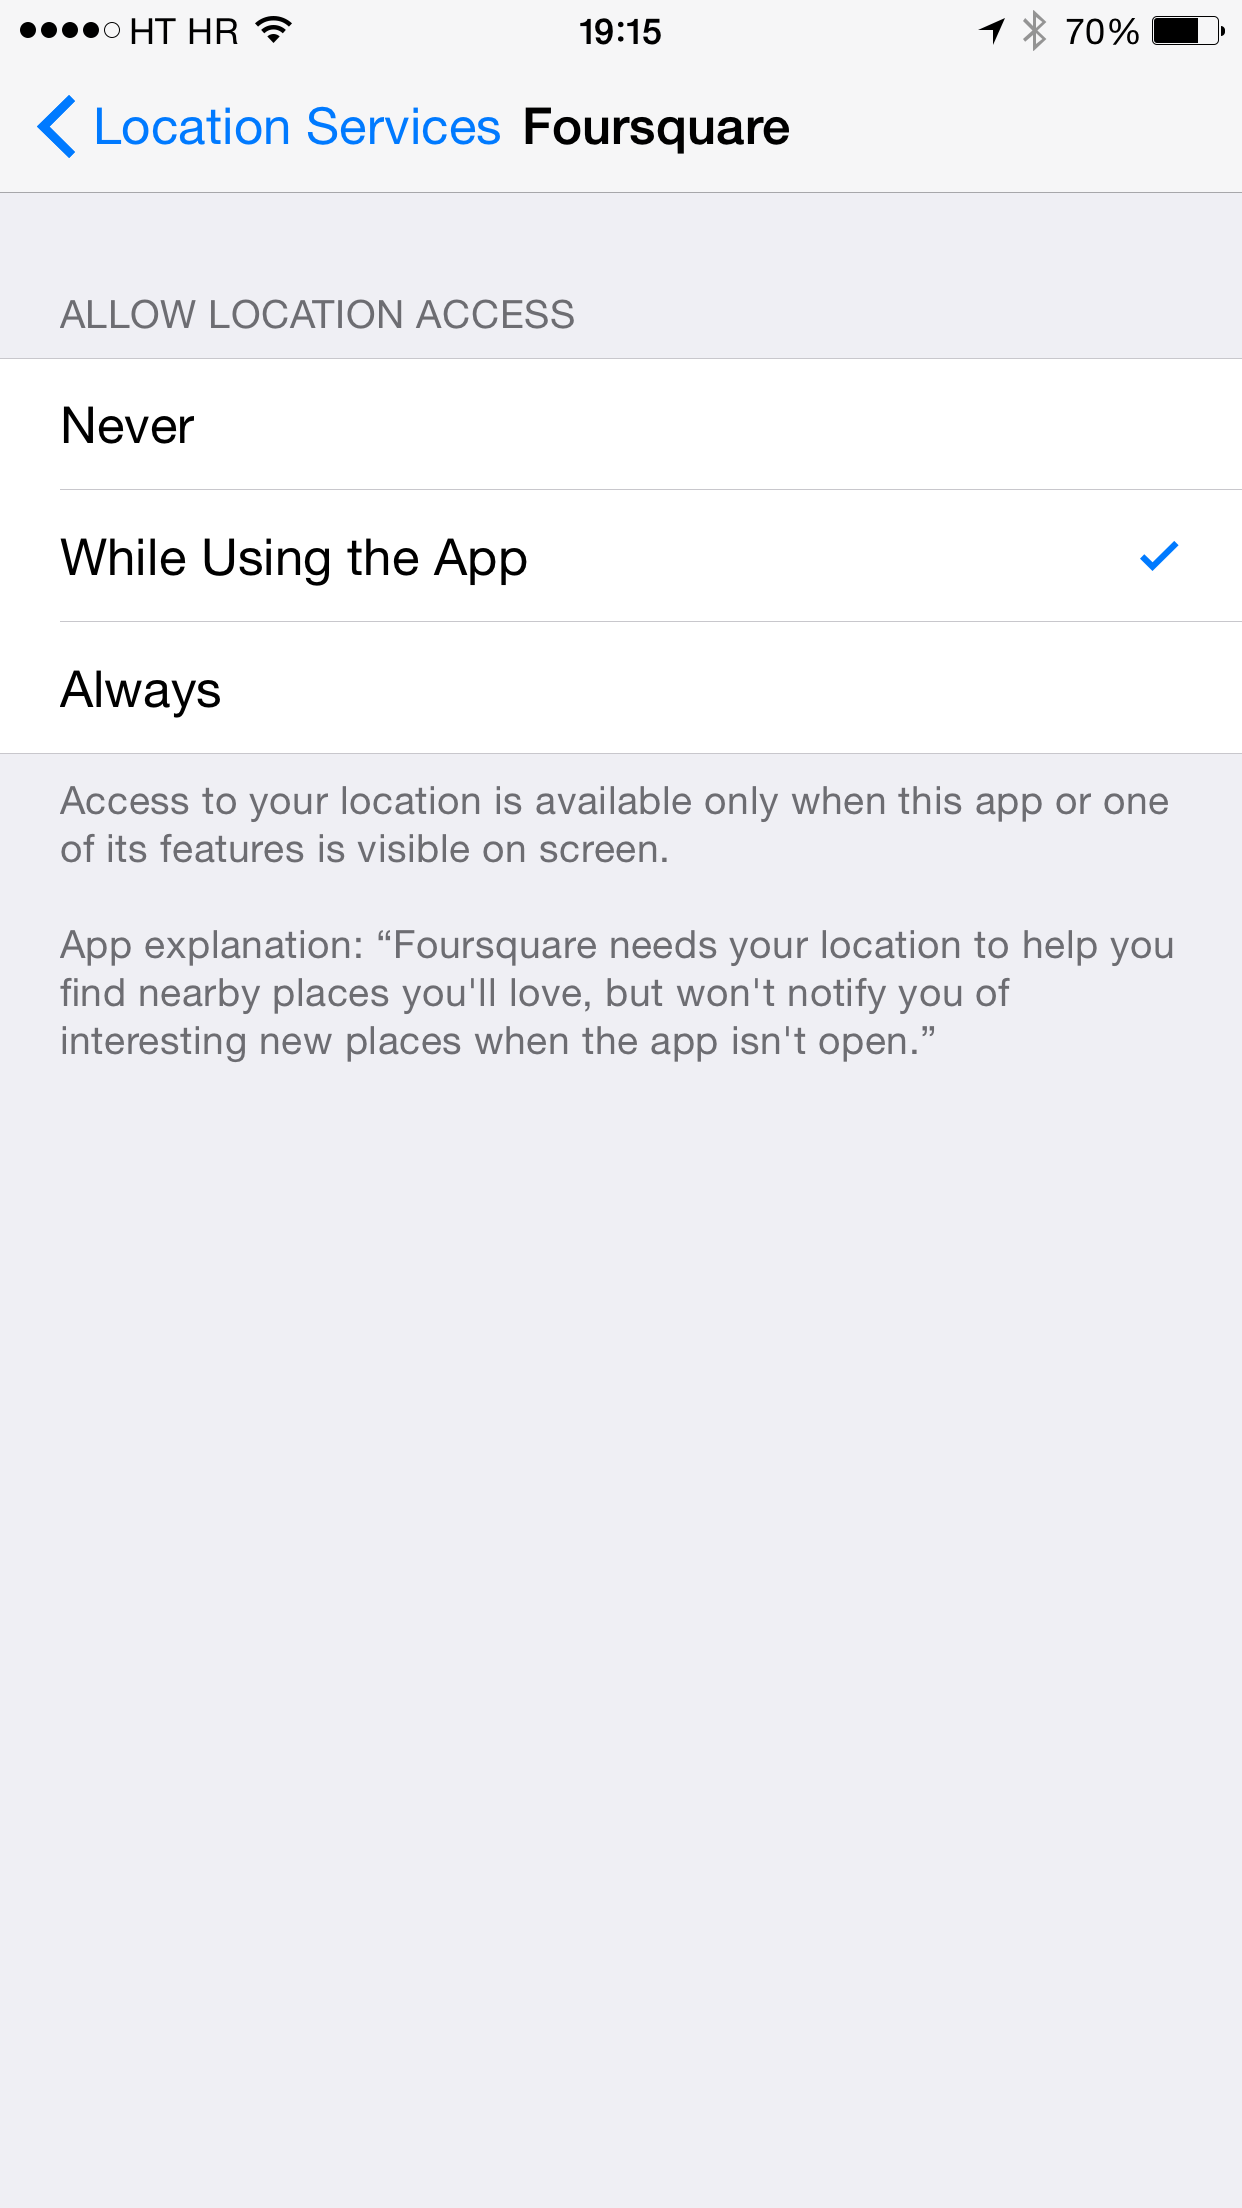 Foursquare 8.5 for iOS (Location Services, iPhone screenshot 001)